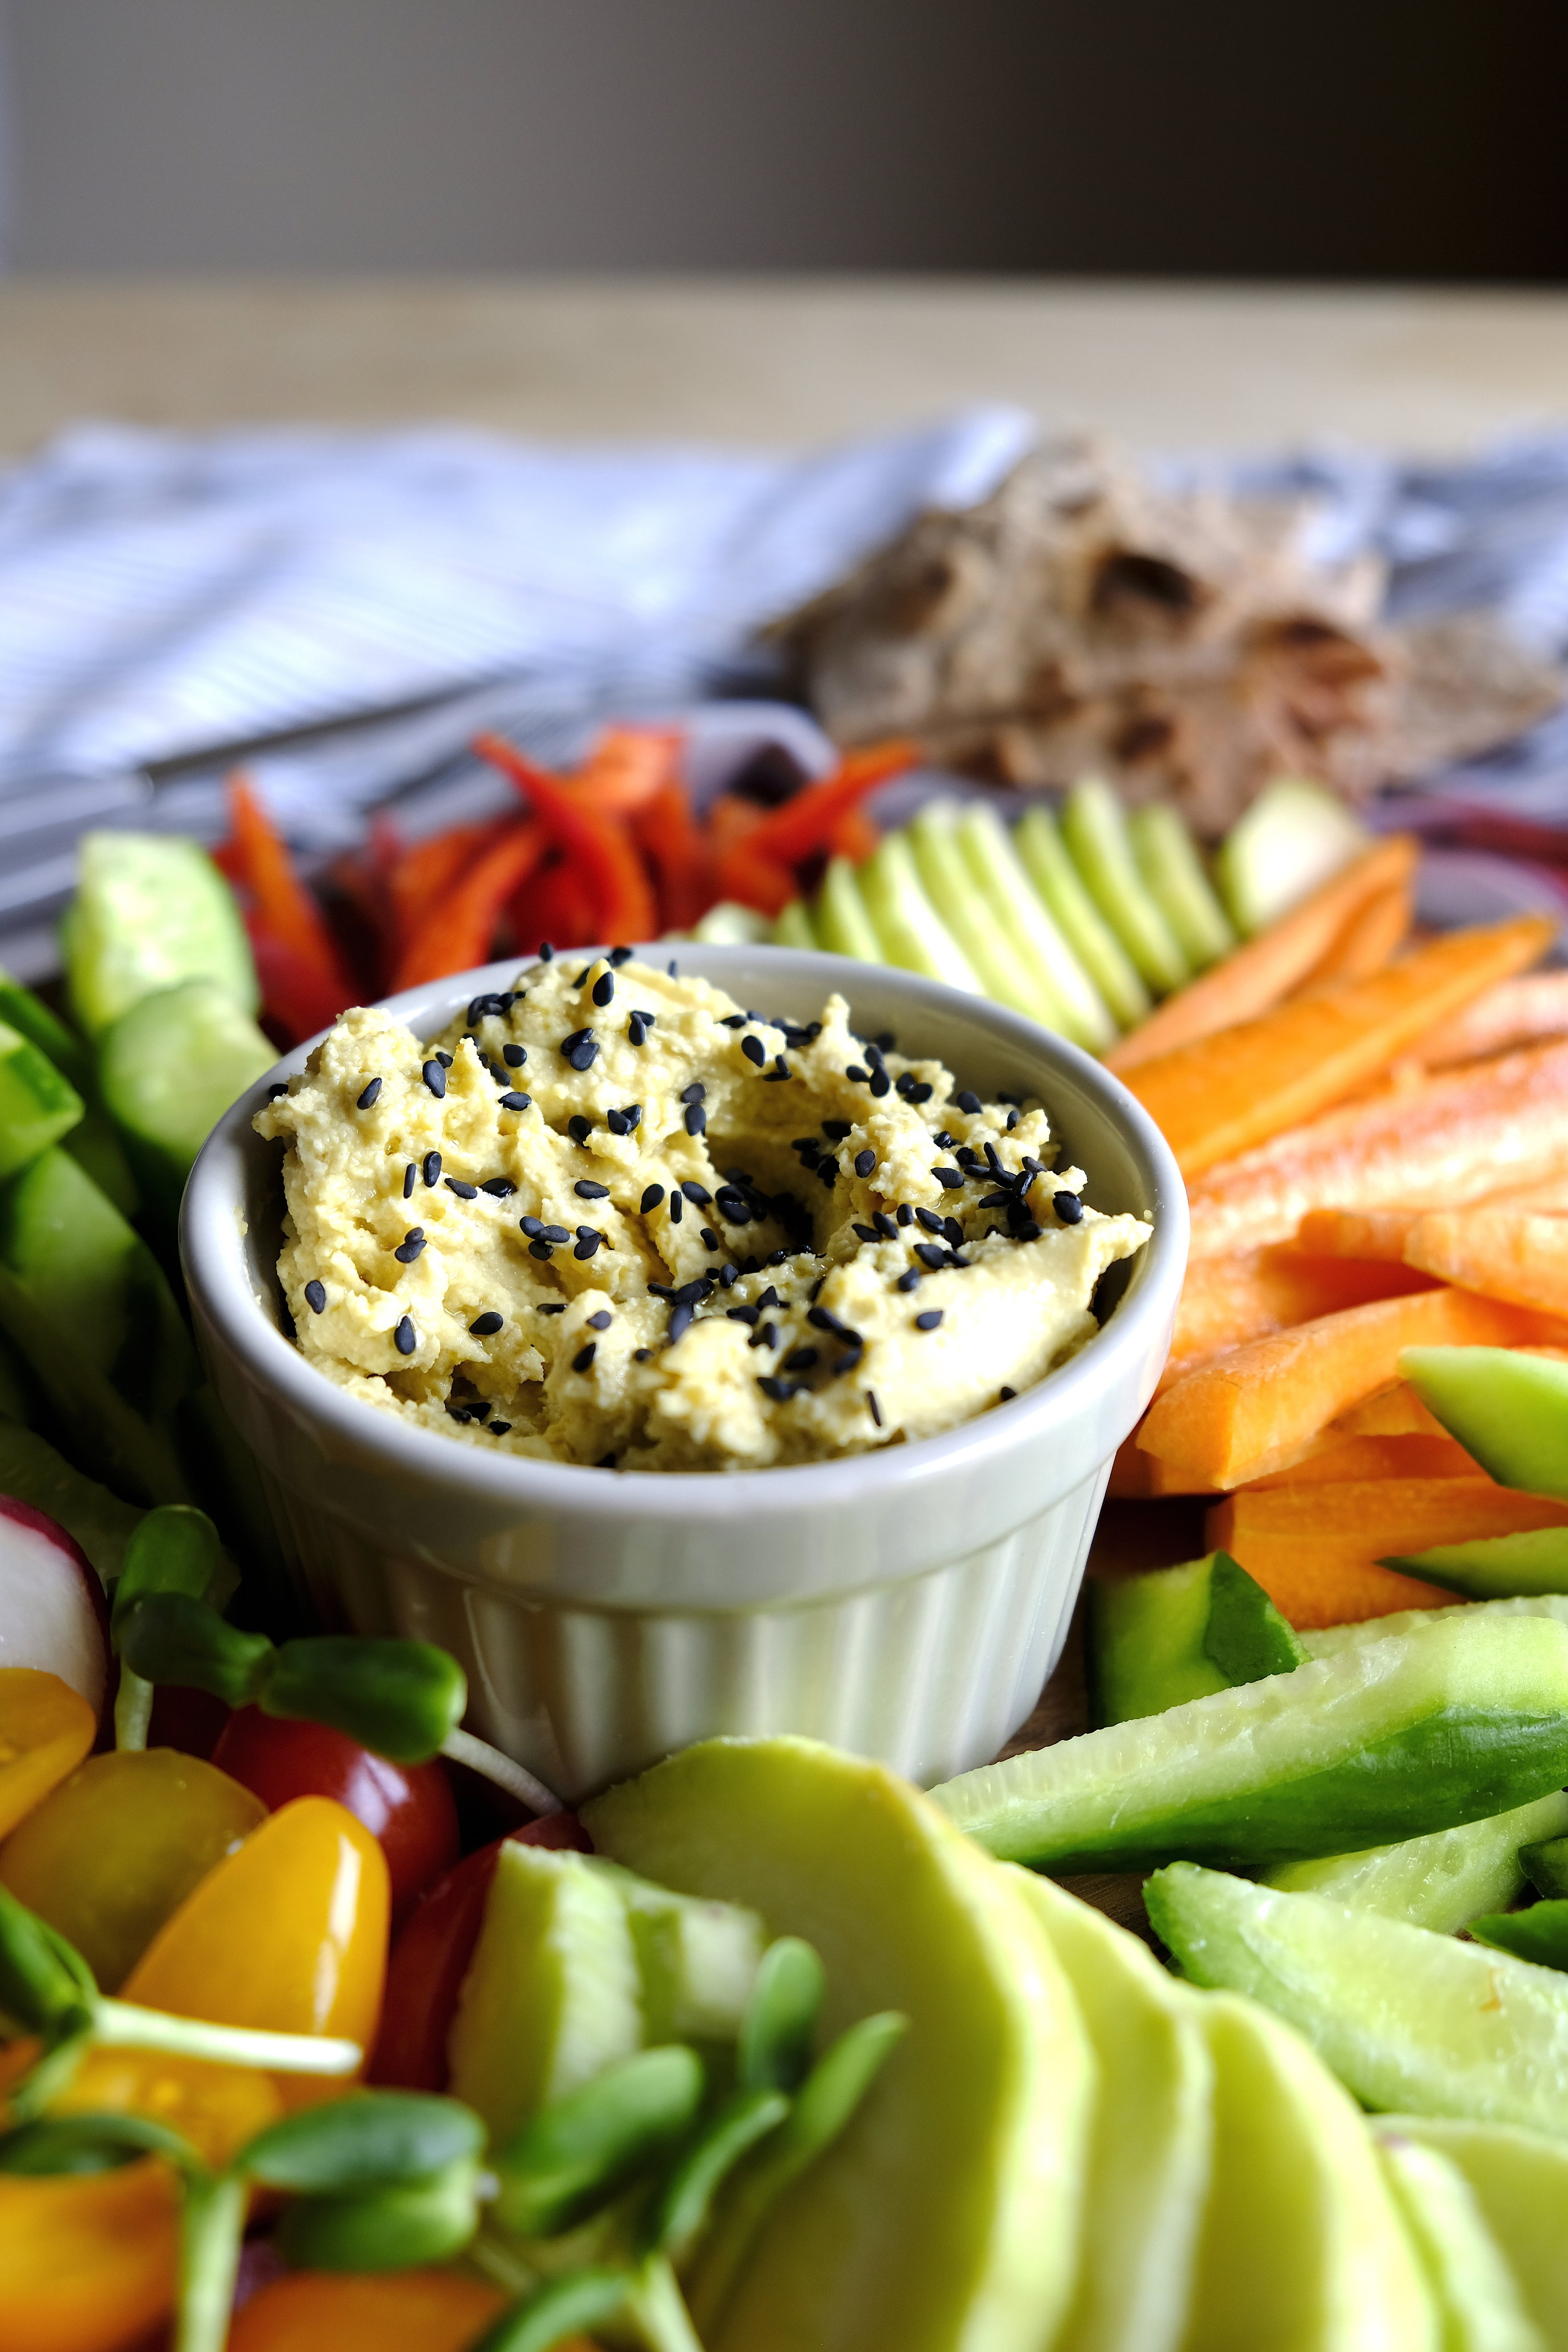 Homemade hummus healthy dinner_The Nature Project.JPG